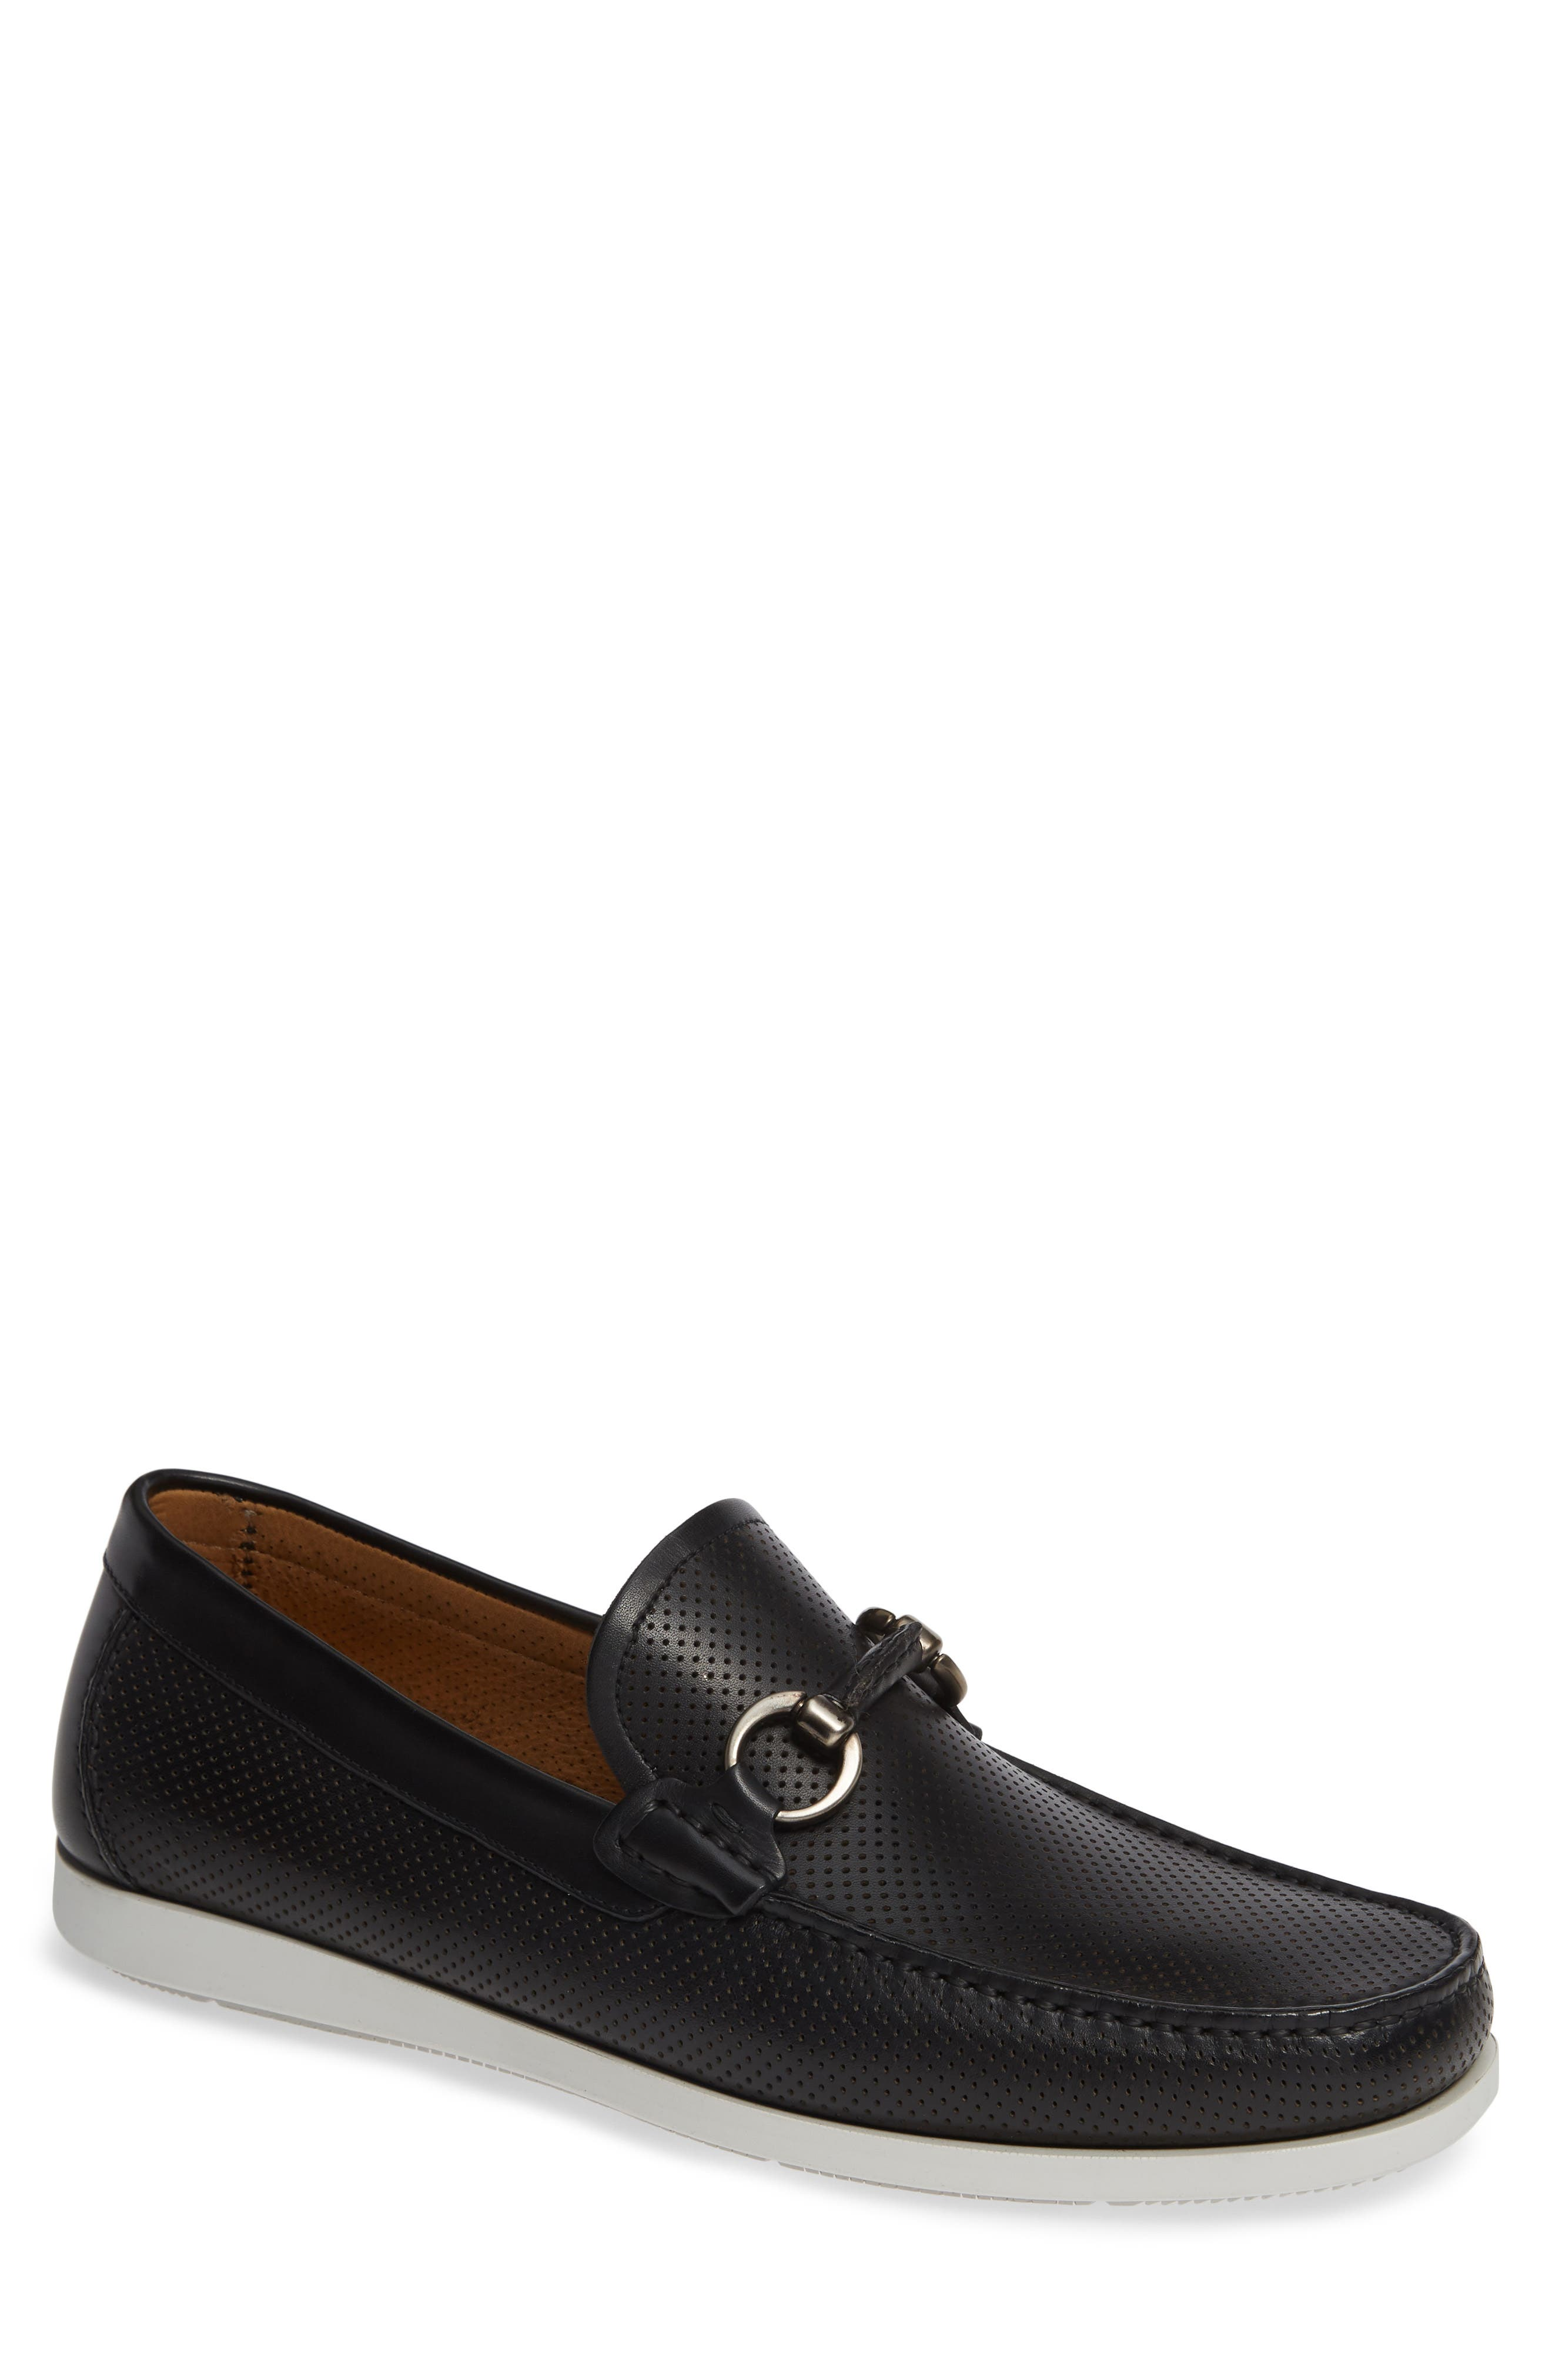 Beasley Perforated Moc Toe Bit Loafer,                             Main thumbnail 1, color,                             BLACK LEATHER